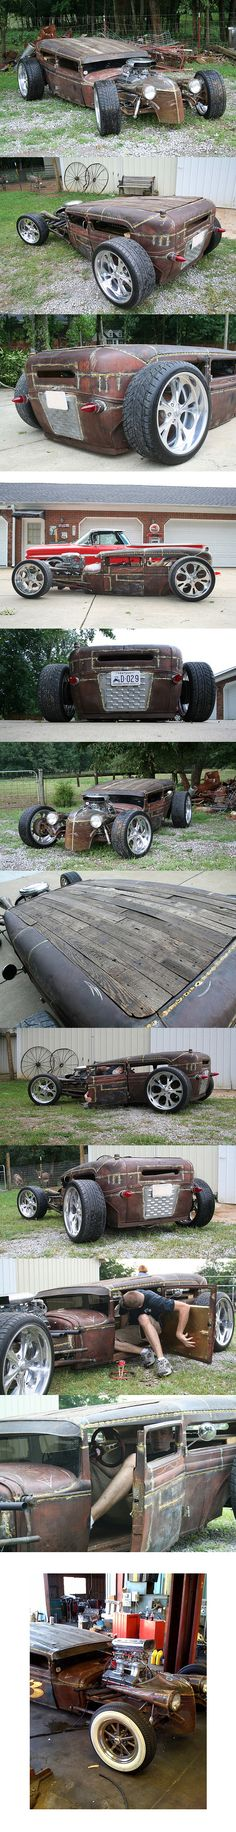 That is 1 Sick Rat Rod... See how tall man get in the car.... More about Rat Rod Culture here http://goo.gl/OP3fEV